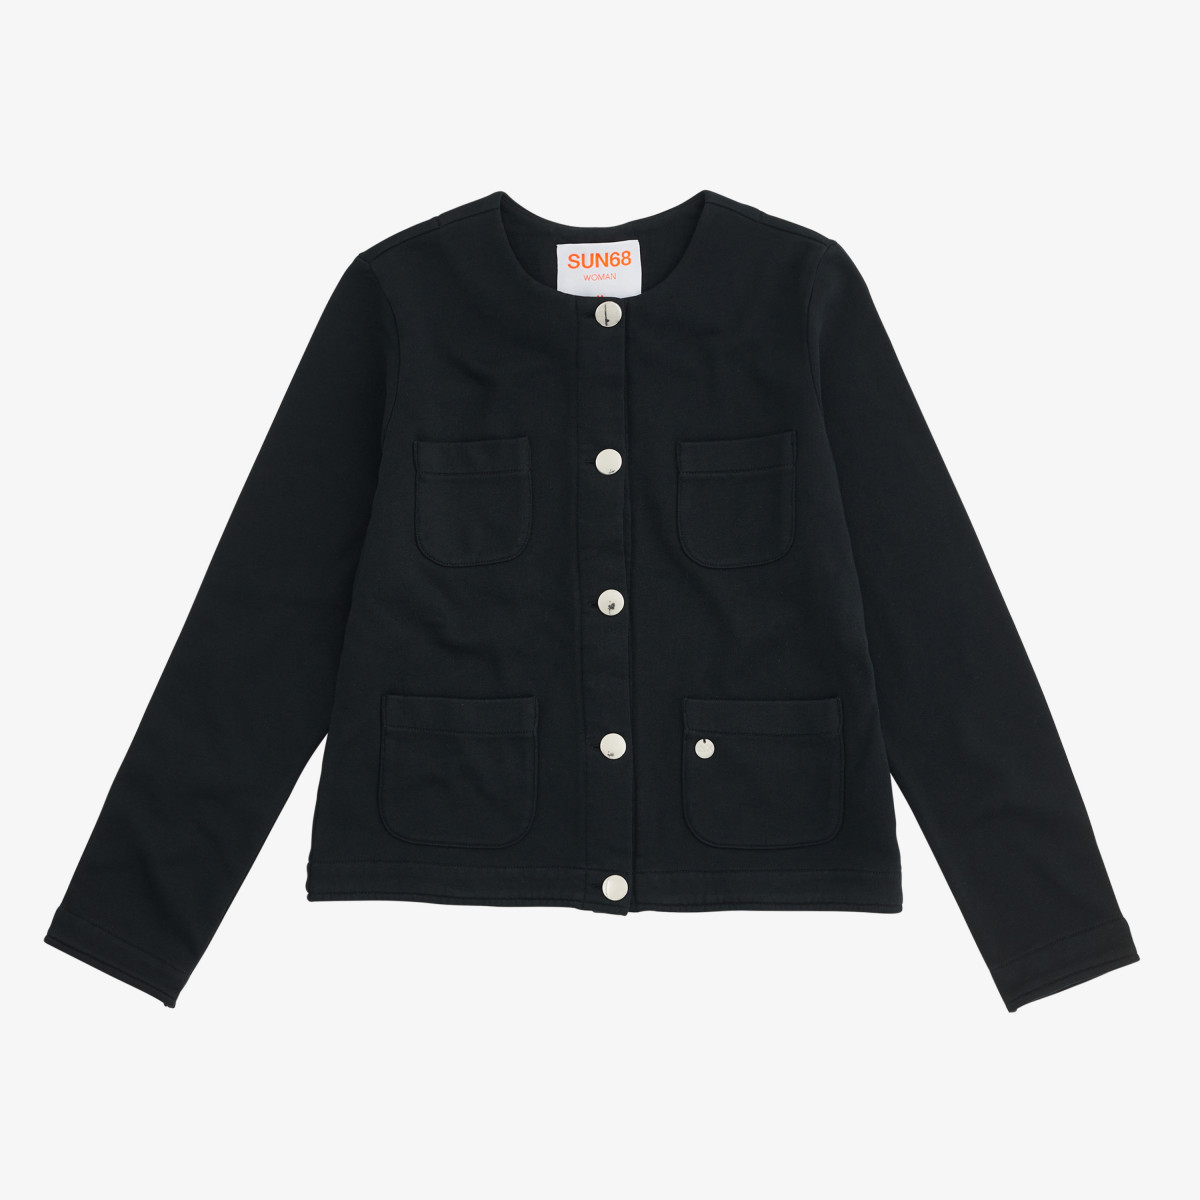 ROUND JACKET COTTON FL. NERO